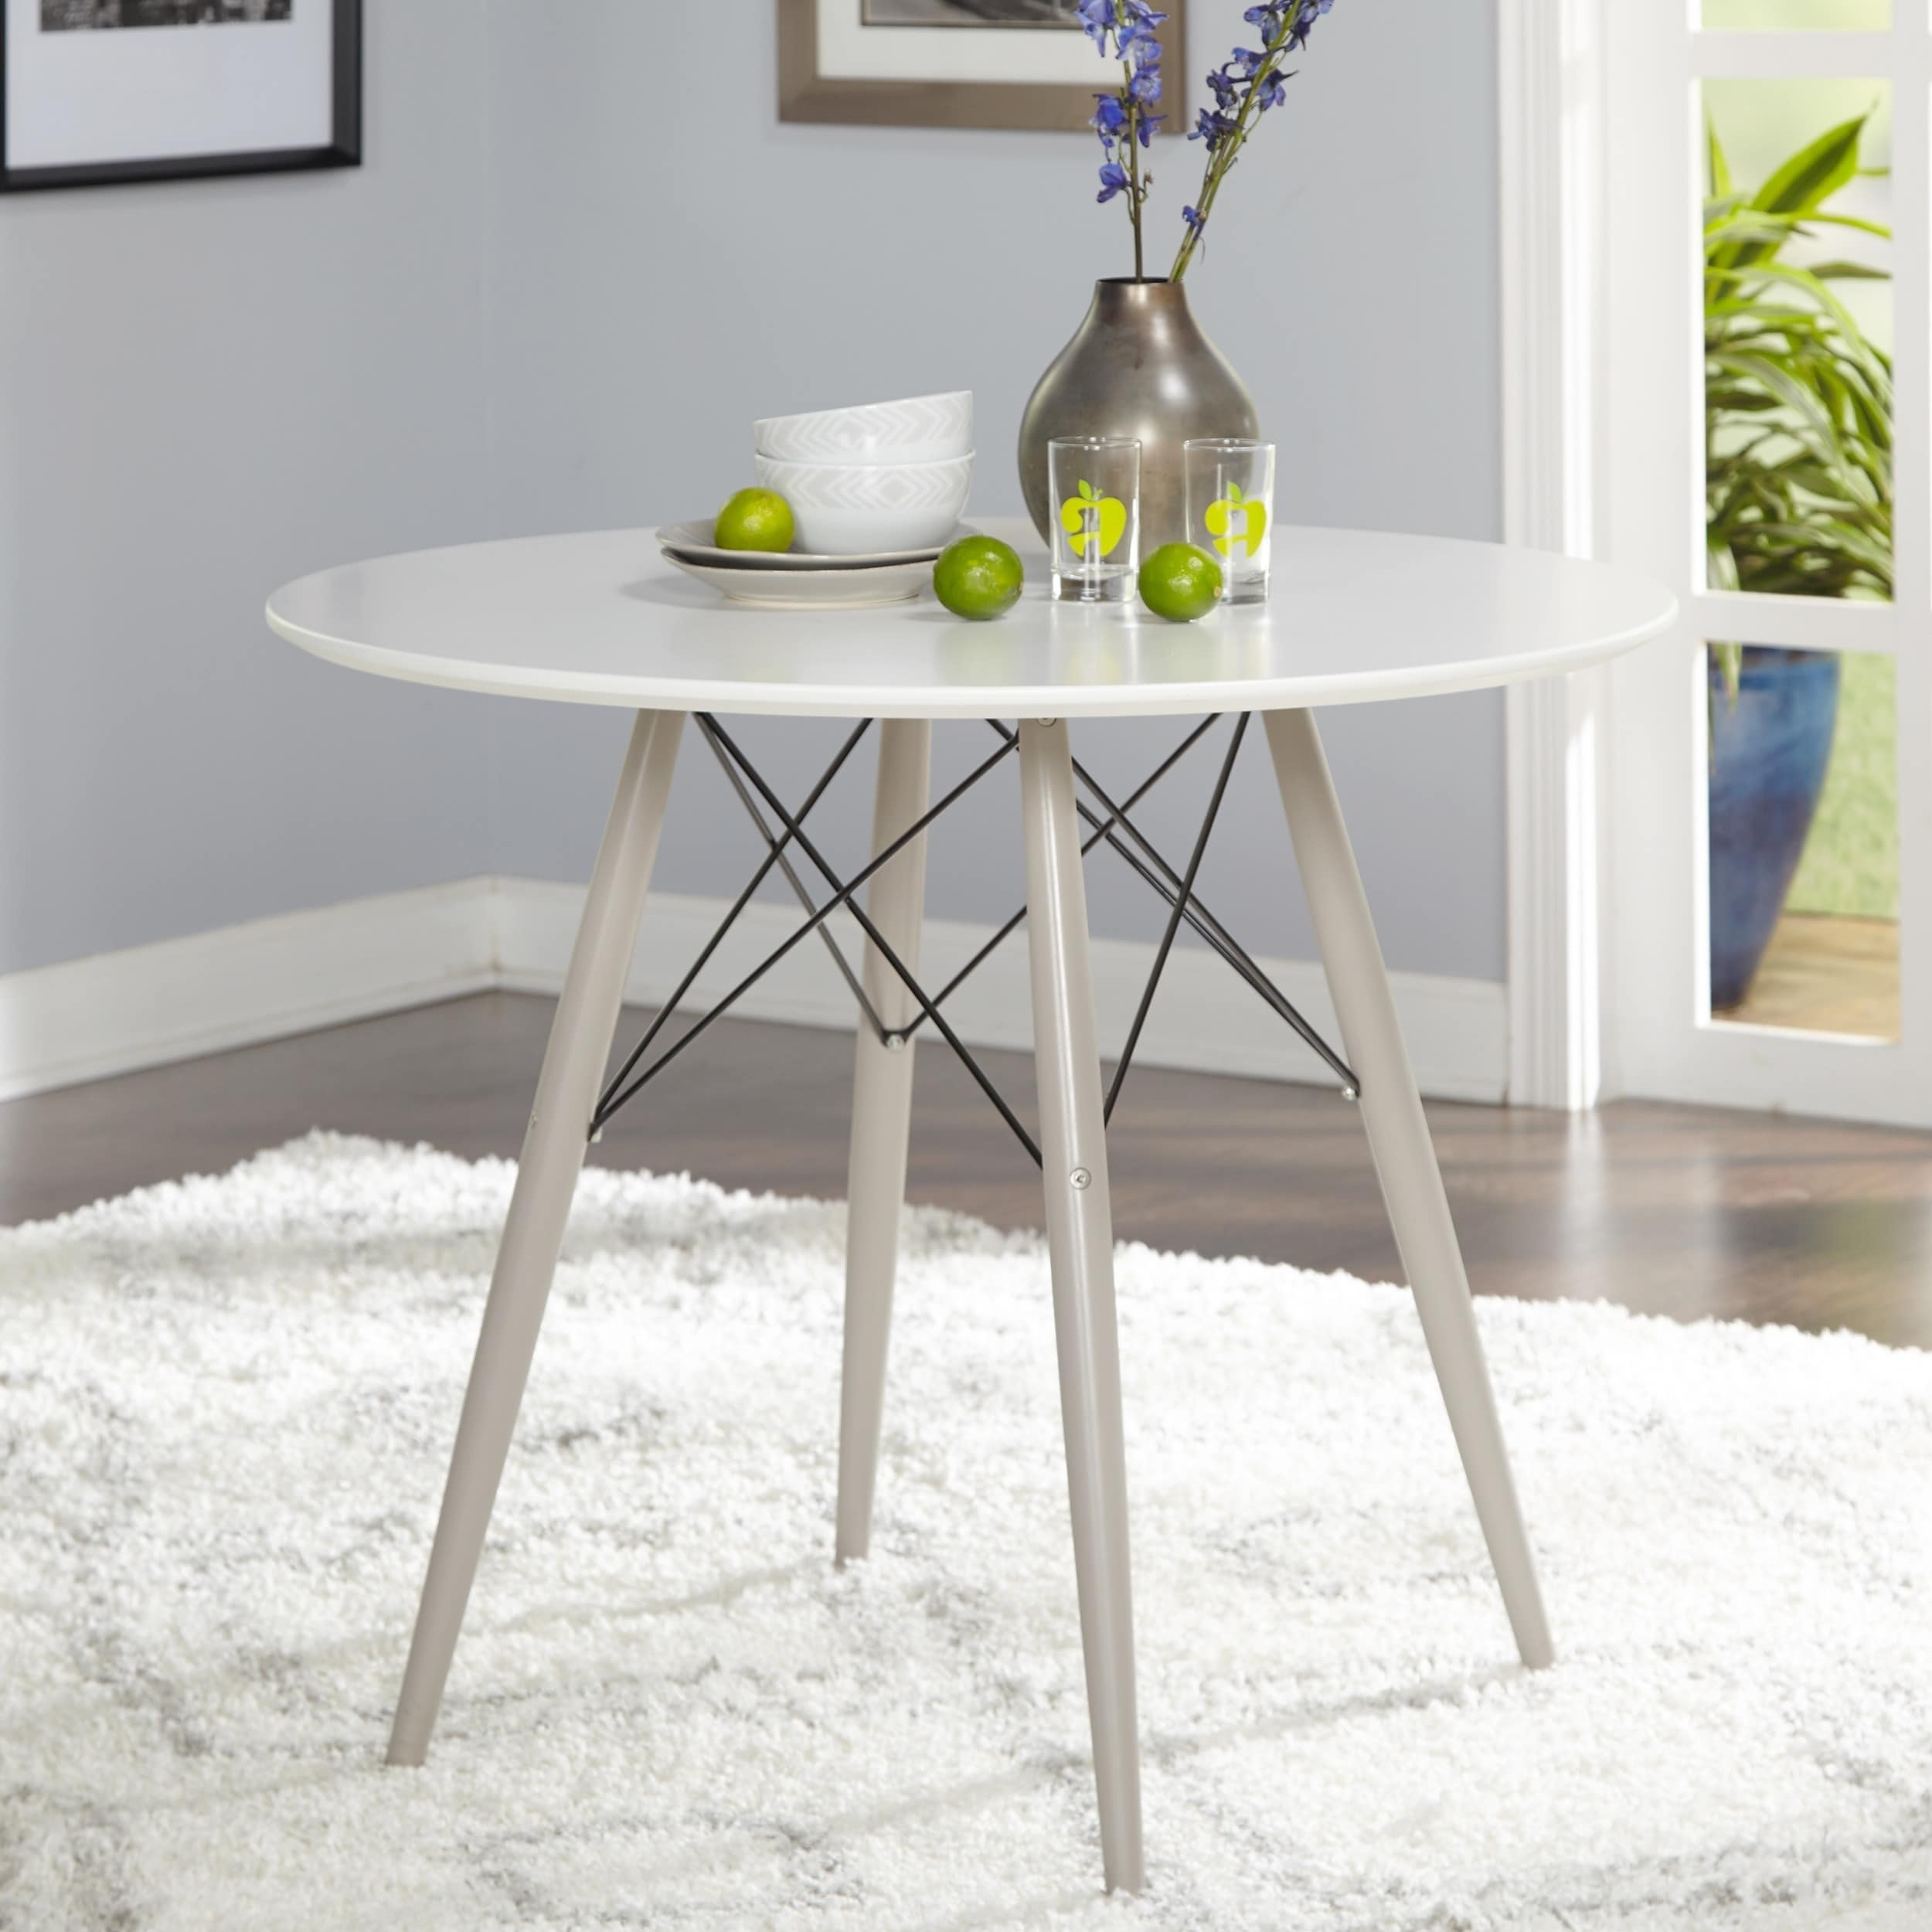 Shop Simple Living Elba Mid-Century Dining Table - N/a - On Sale with regard to Elba Ottoman-Coffee Tables (Image 27 of 30)